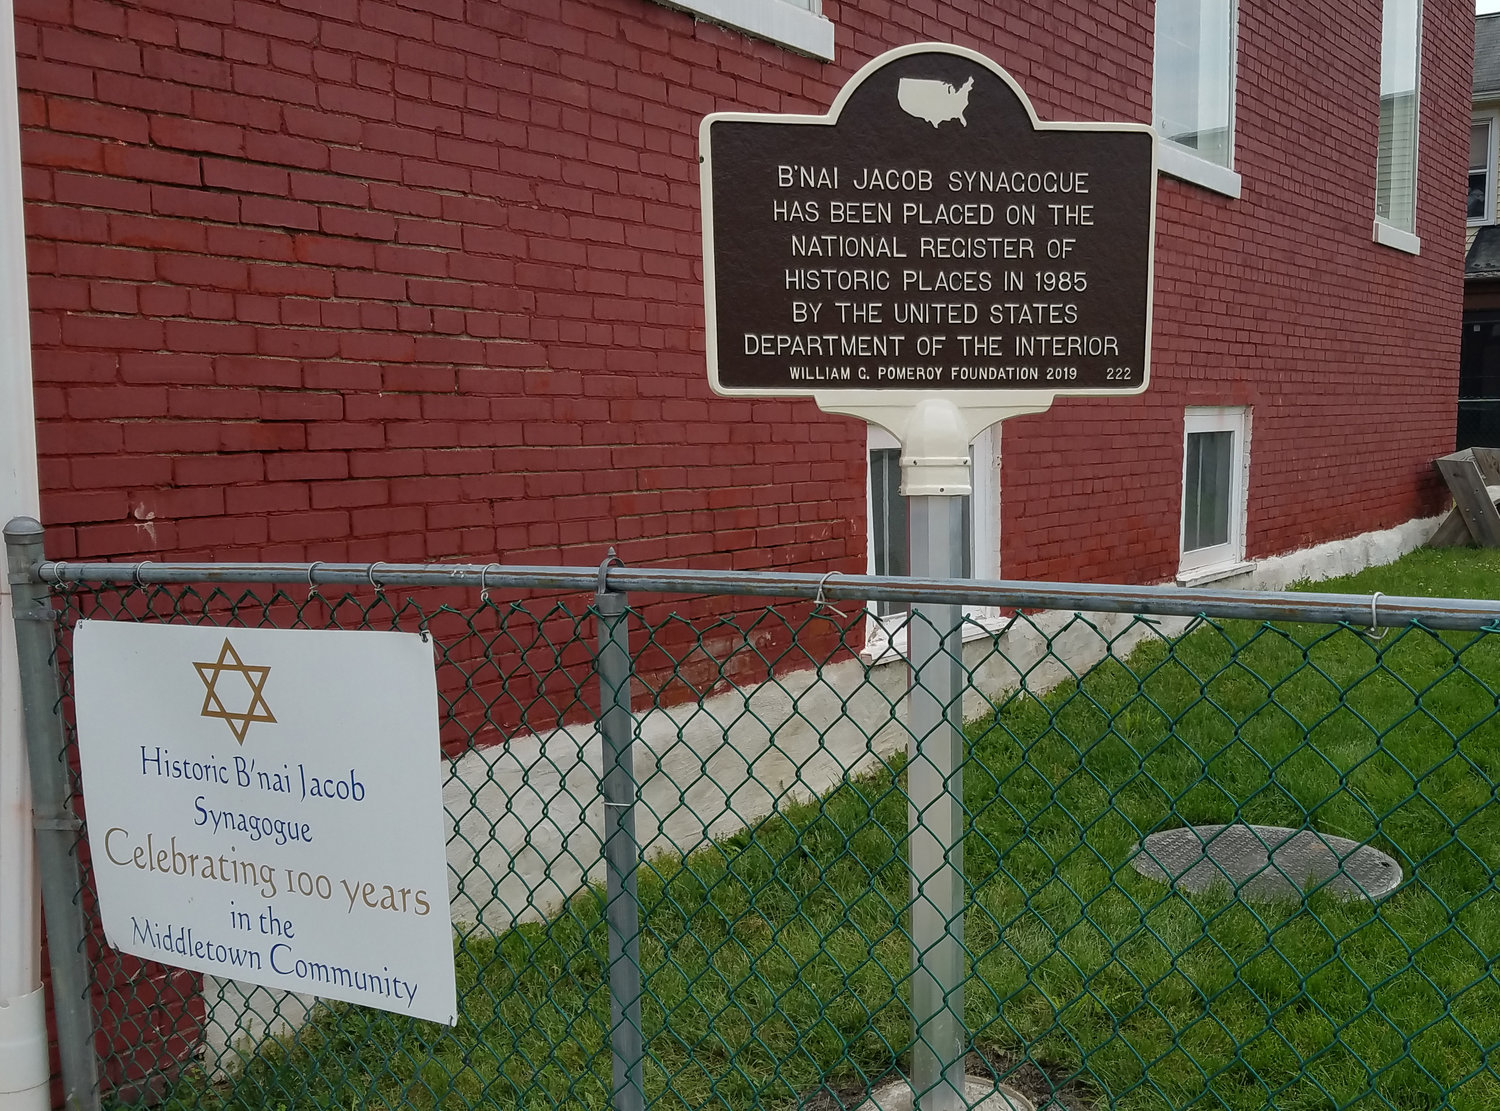 B'nai Jacob Synagogue at Nissley and Water streets in Middletown was awarded a historical marker designed by Sewah Studios in Ohio.